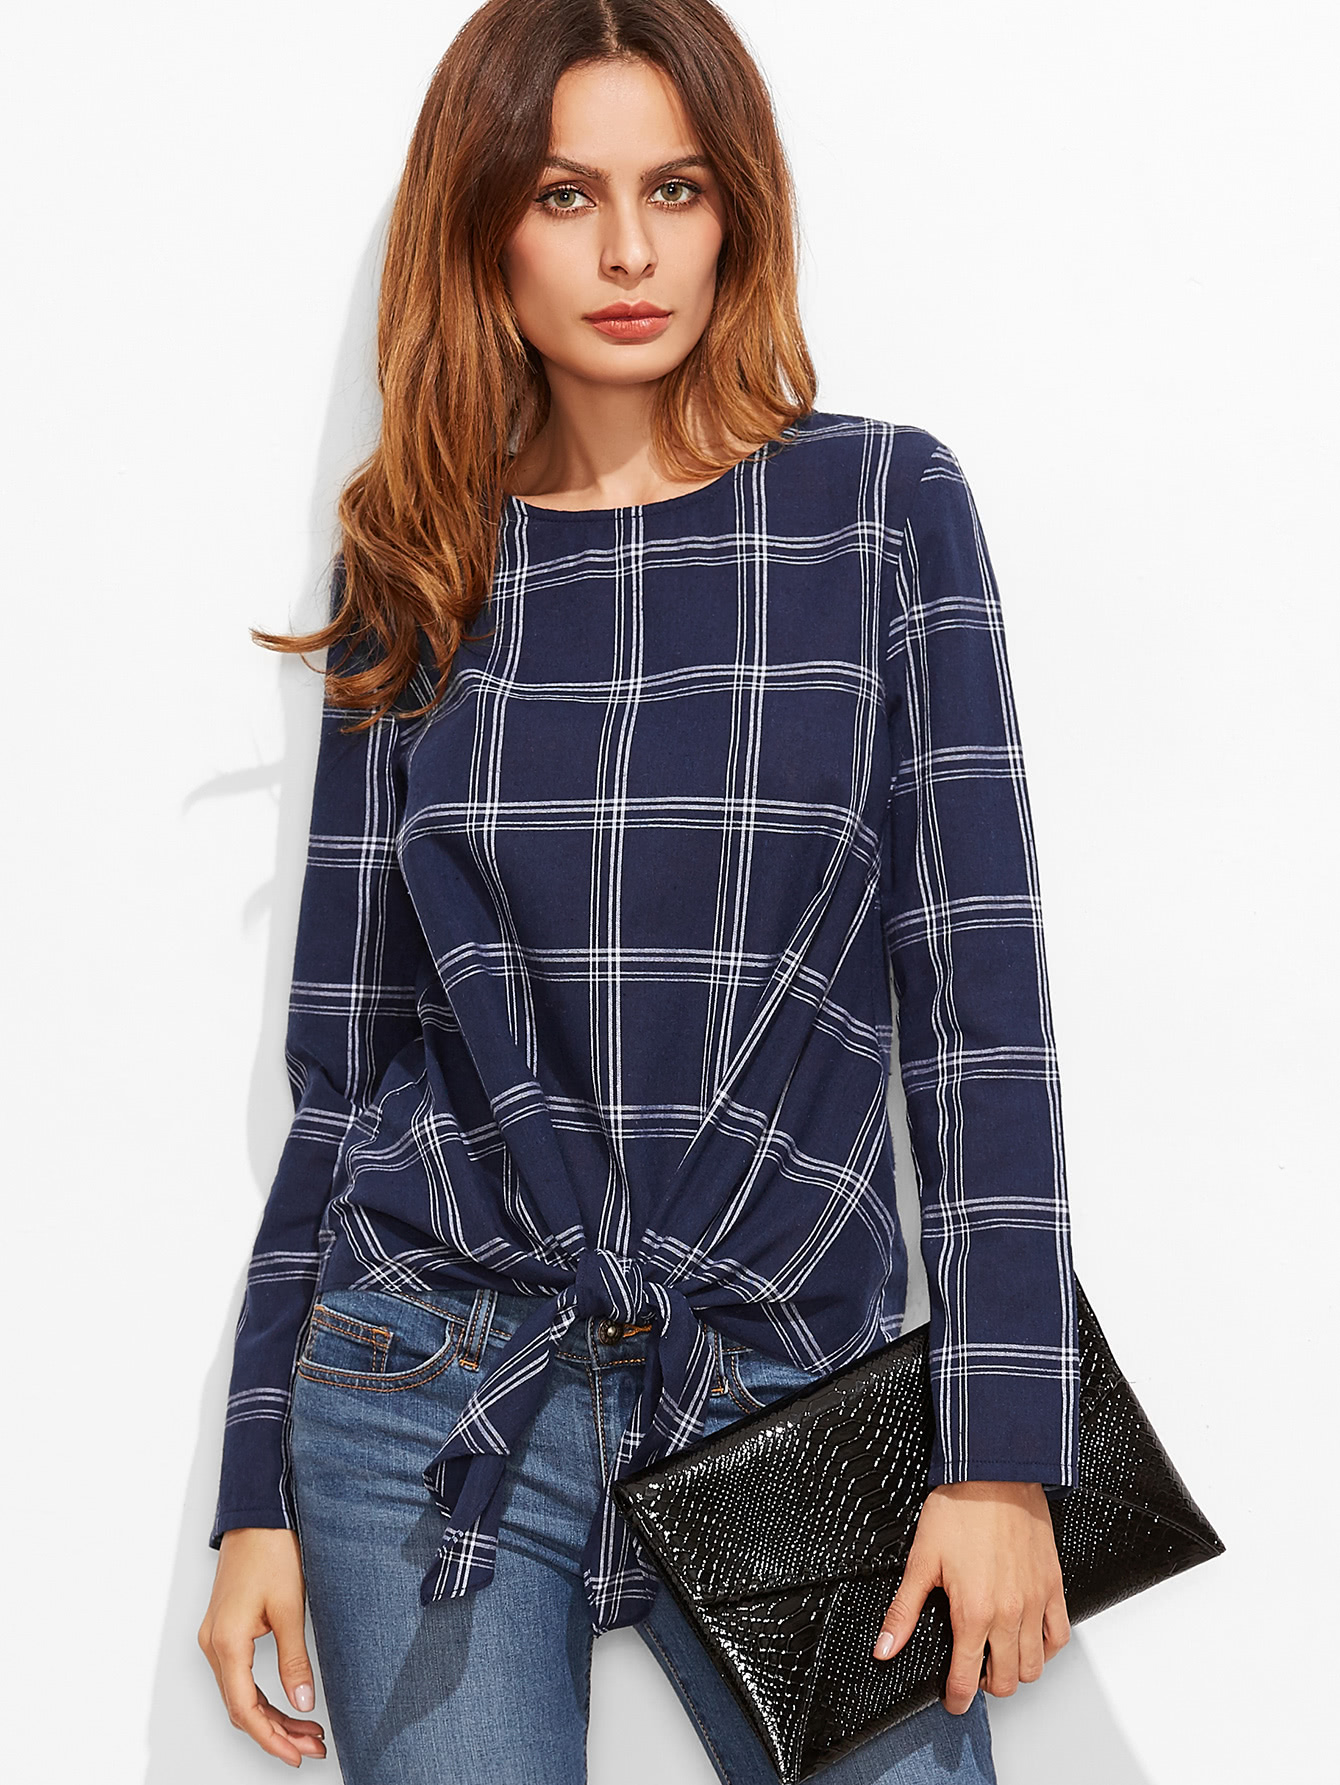 Navy Grid Knot Front Long Sleeve TopNavy Grid Knot Front Long Sleeve Top<br><br>color: Navy<br>size: XS